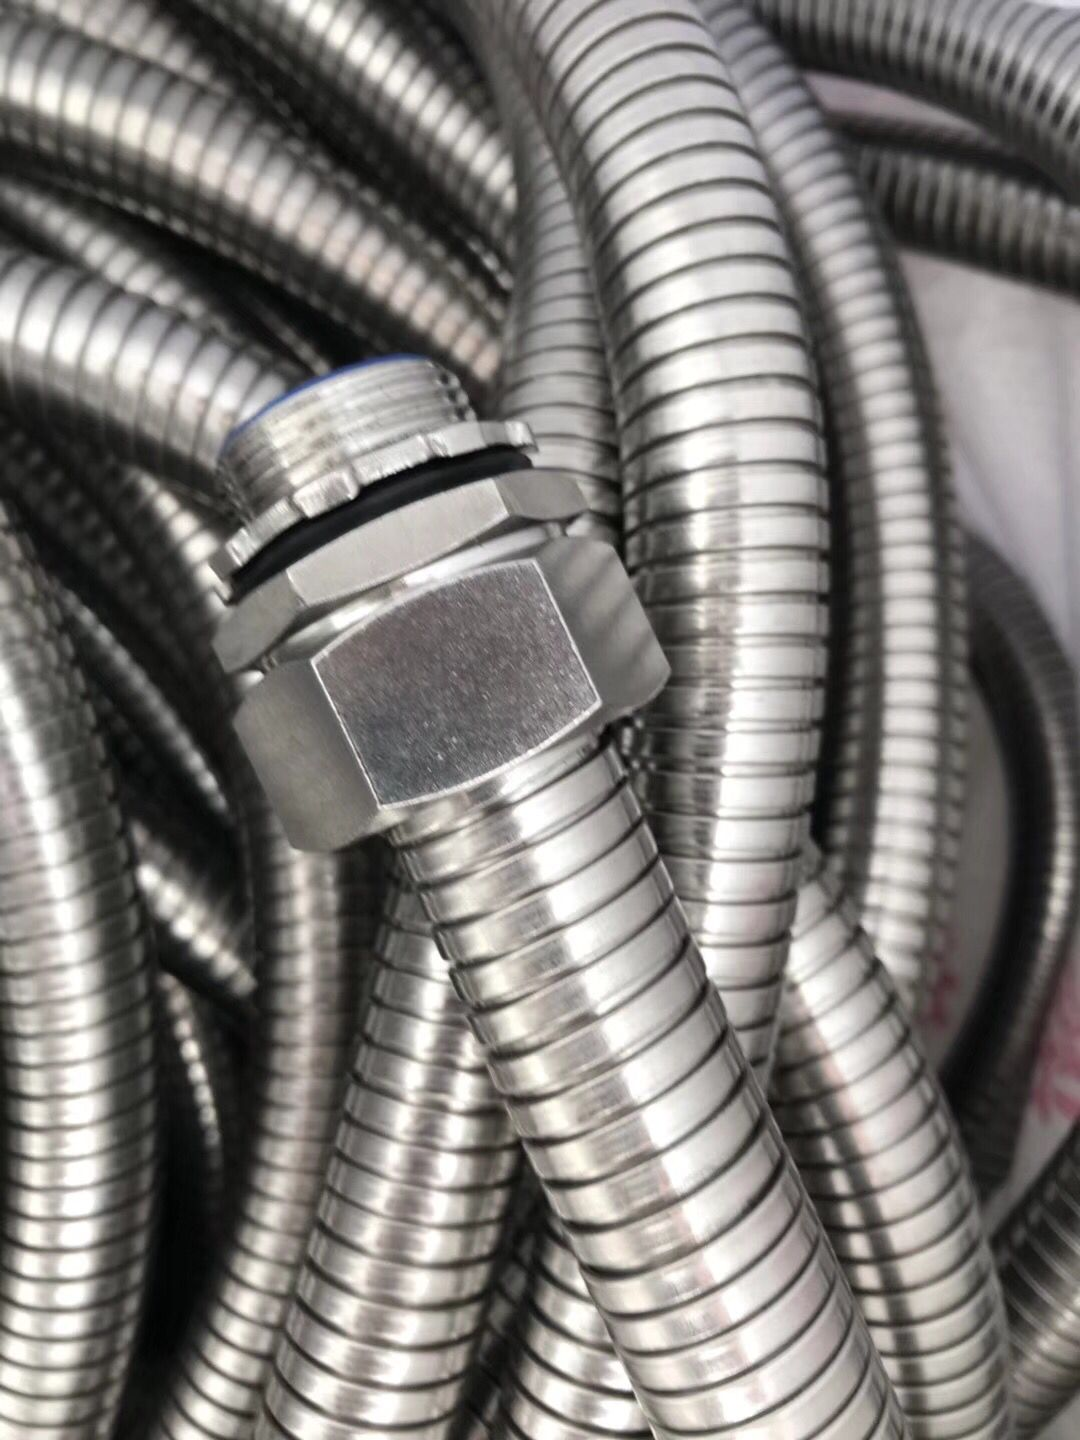 High Pressure Stainless Steel Helical Hose